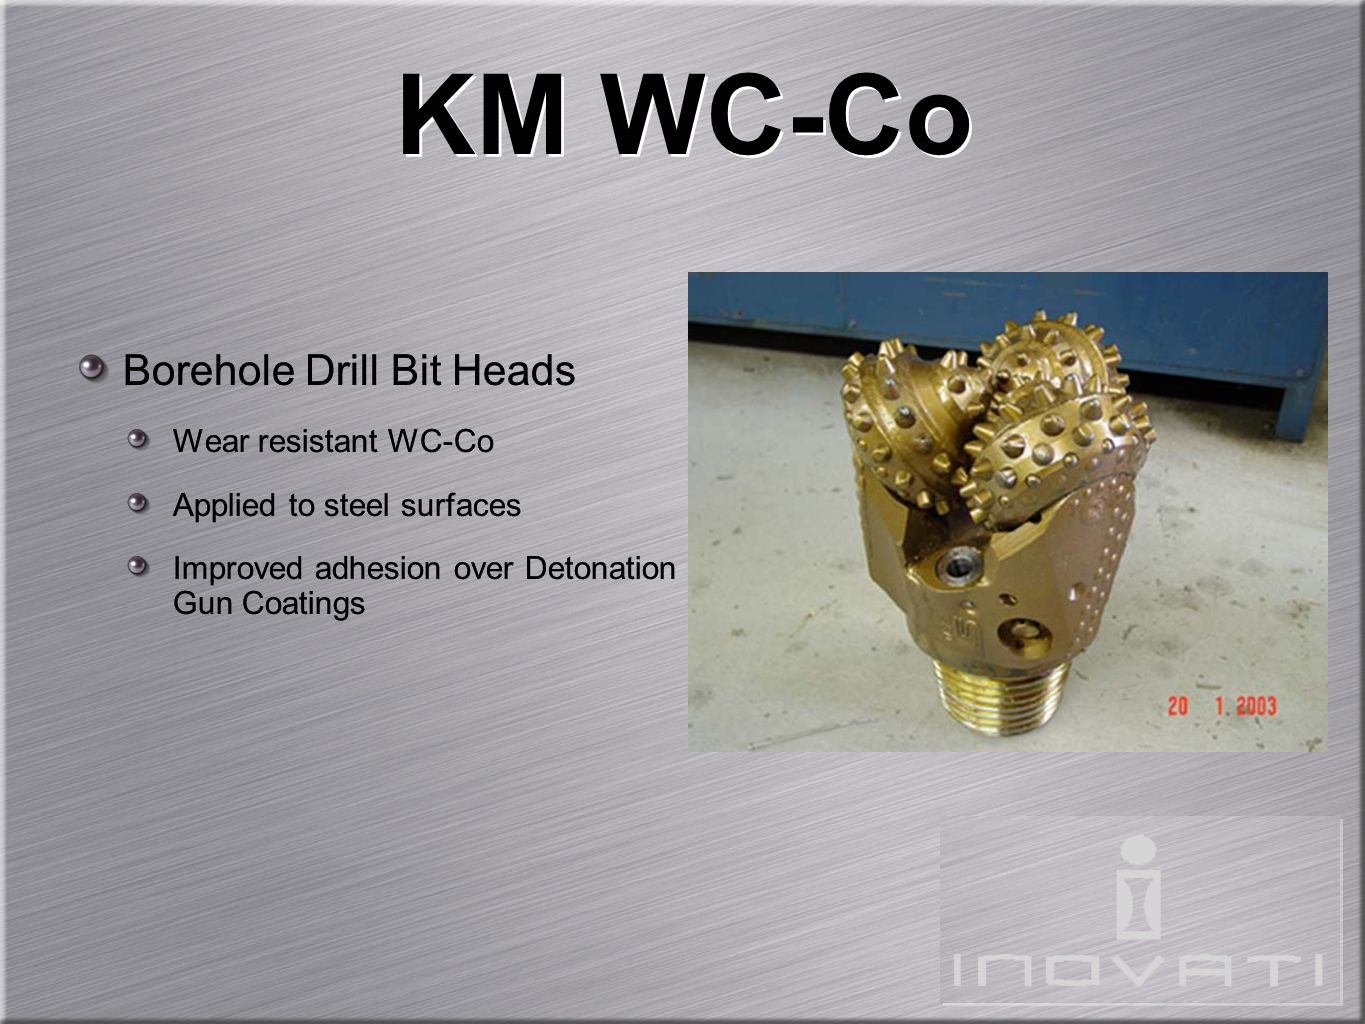 KM WC-Co Borehole Drill Bit Heads Wear resistant WC-Co